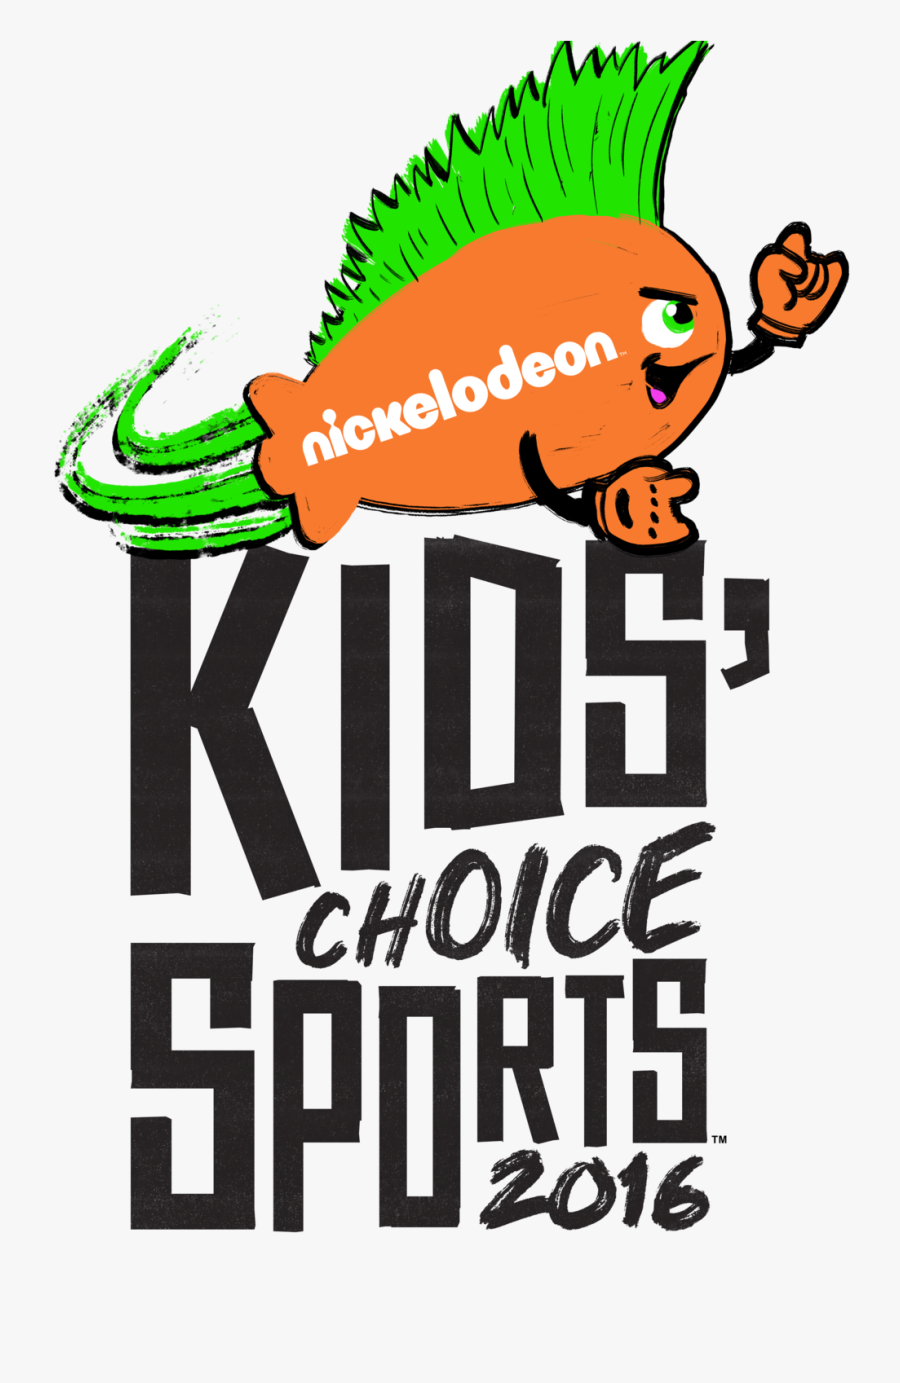 """Nickelodeon""""s Kids Choice Sports - Nickelodeon's Kids Choice Sports, Transparent Clipart"""